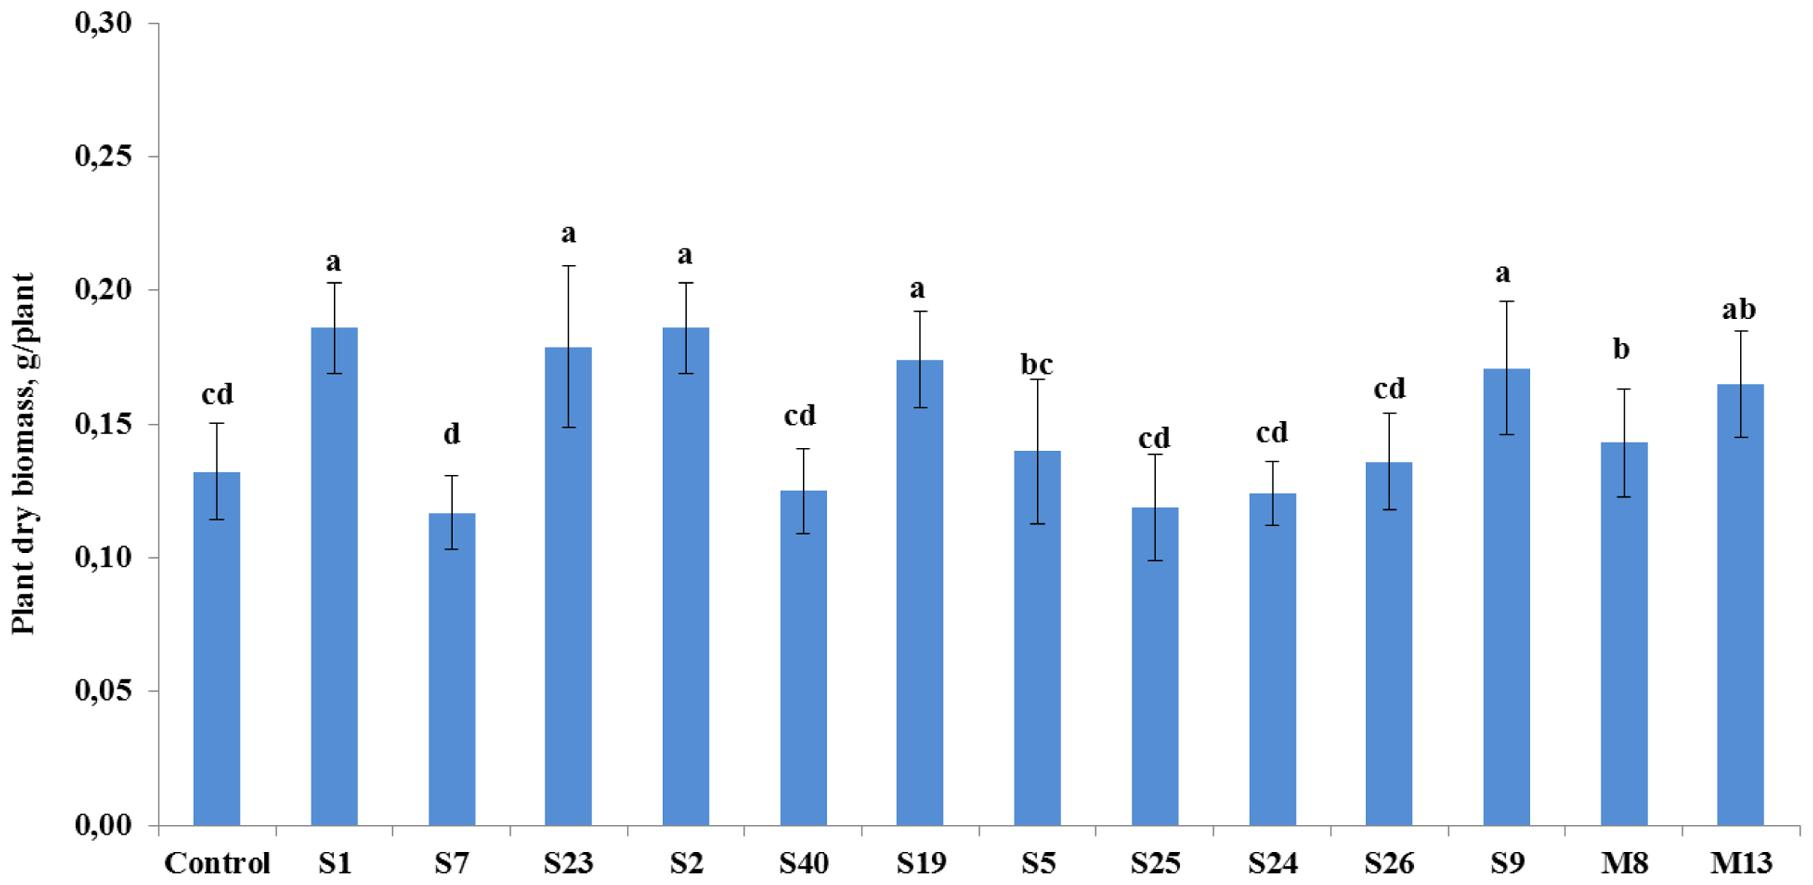 Frontiers Antimicrobial Activity Of Medicinal Plants Correlates Back Gt Images For Bean Germination Diagram